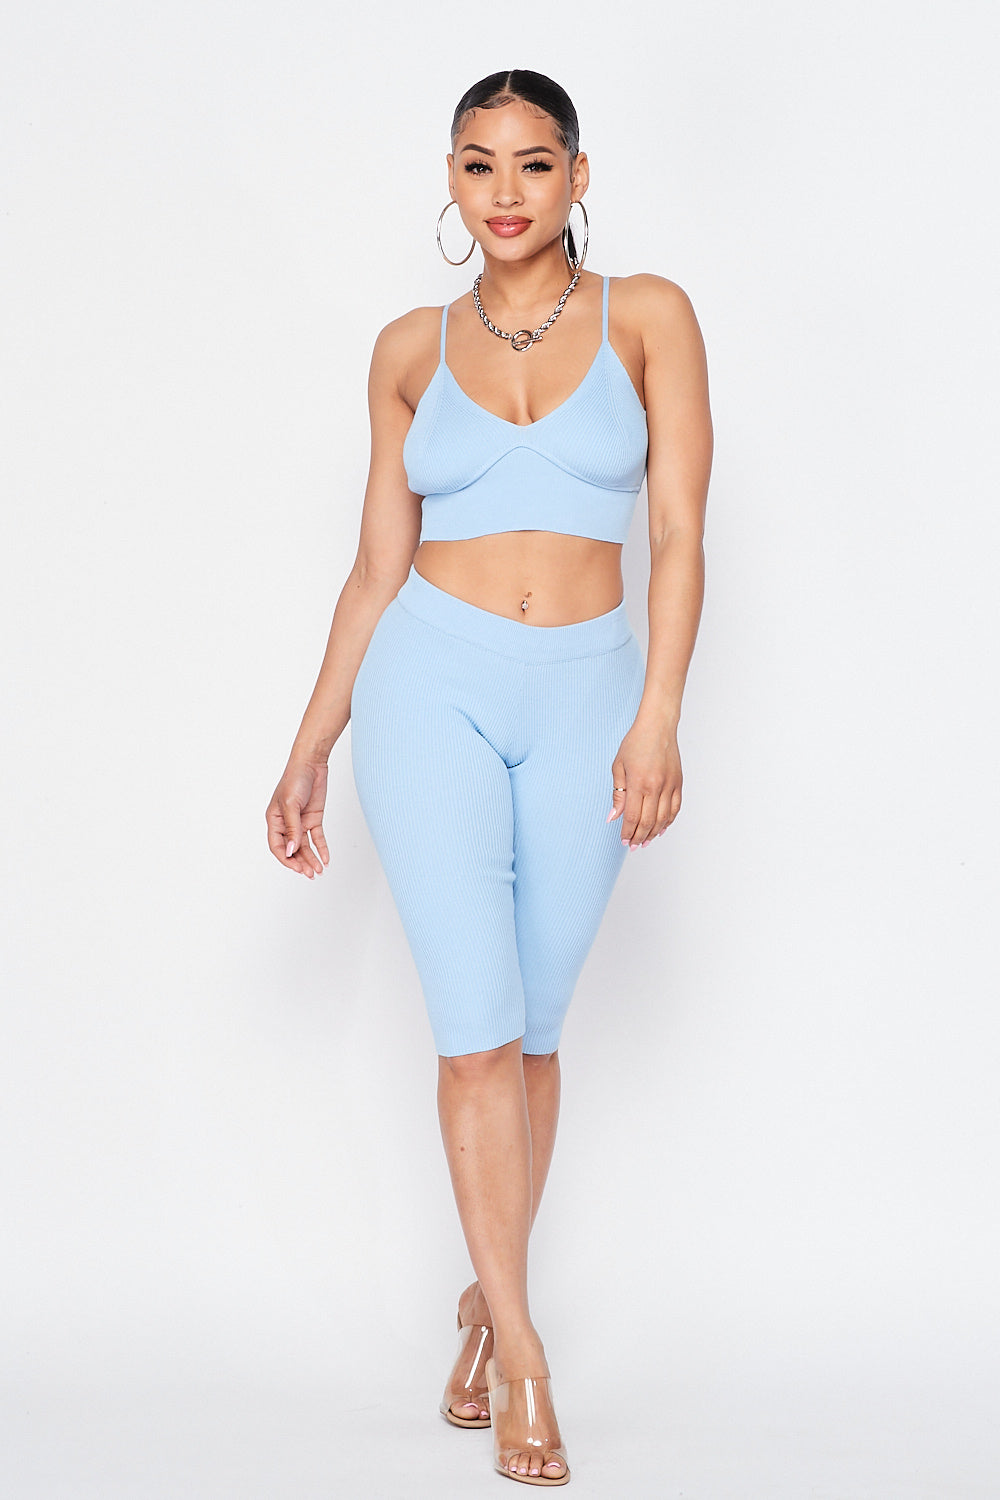 Spaghetti Strap Crop Top and Biker Shorts Set in Blue / Pink - Fashion House USA